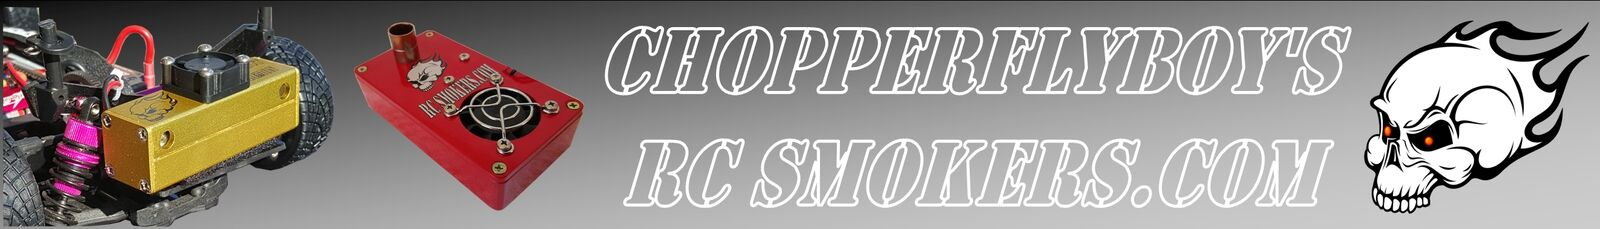 Chopperflyboy's   RCsmokers.com